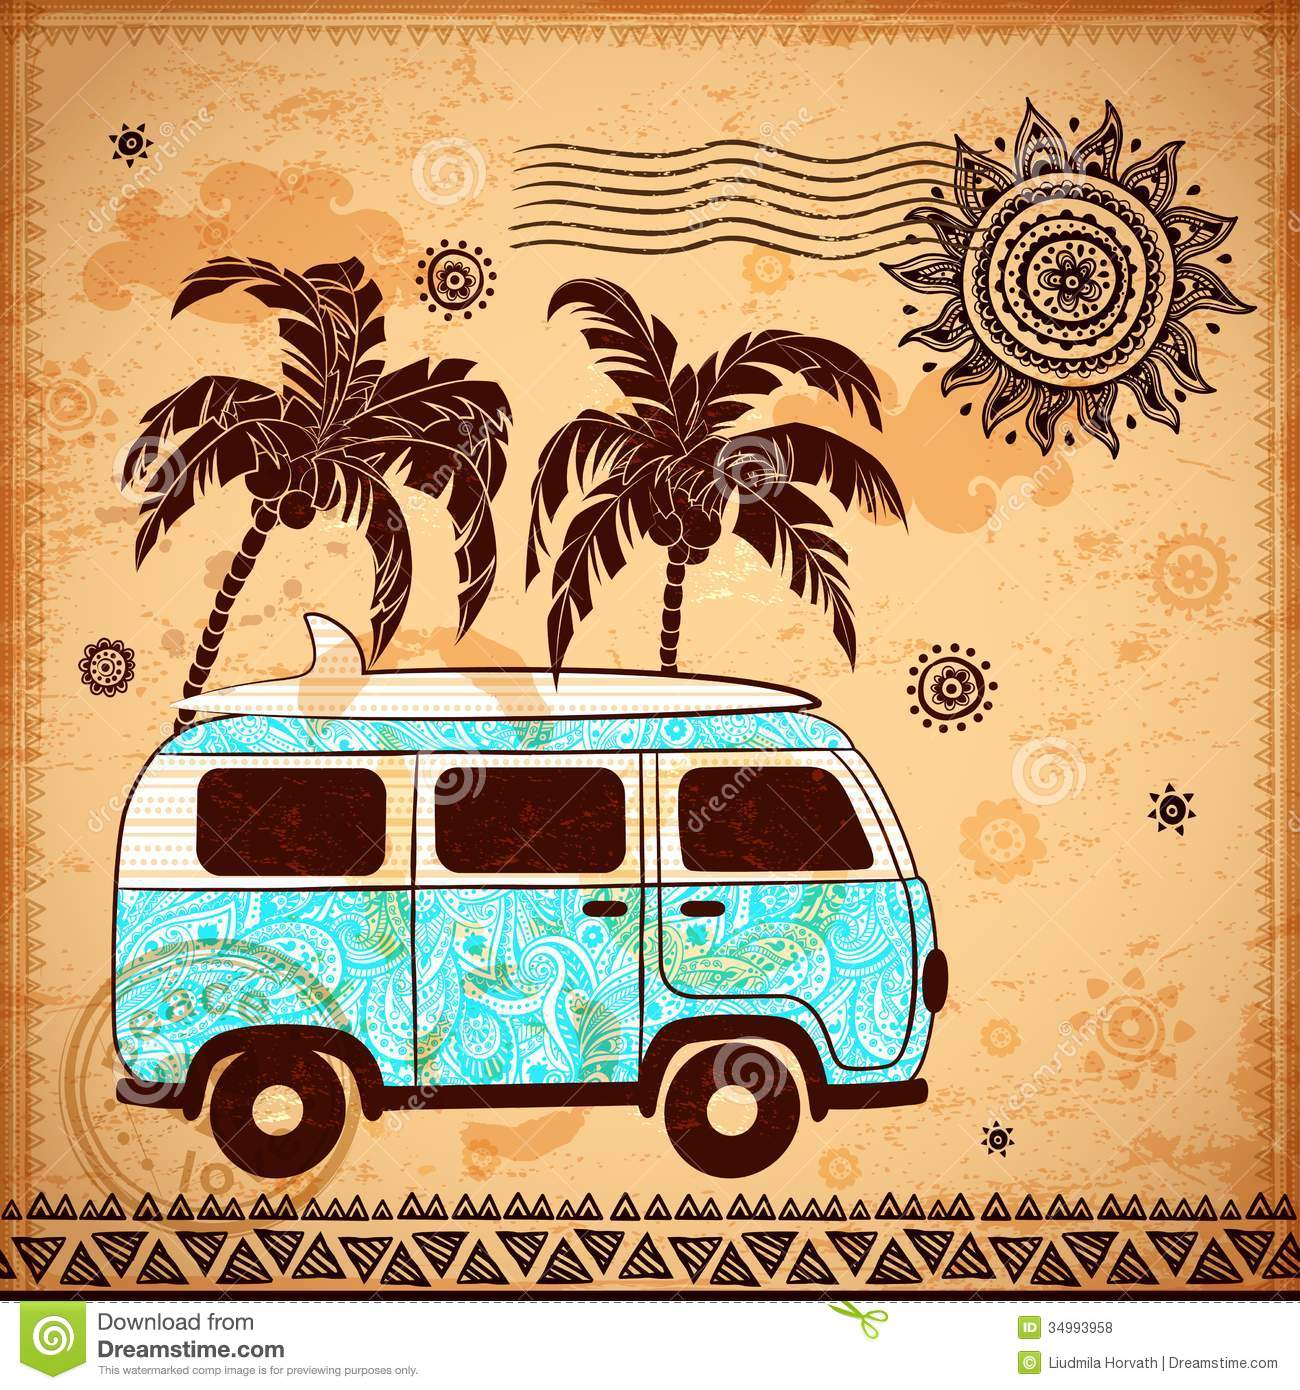 Retro travel bus with vintage background stock vector for Retro images